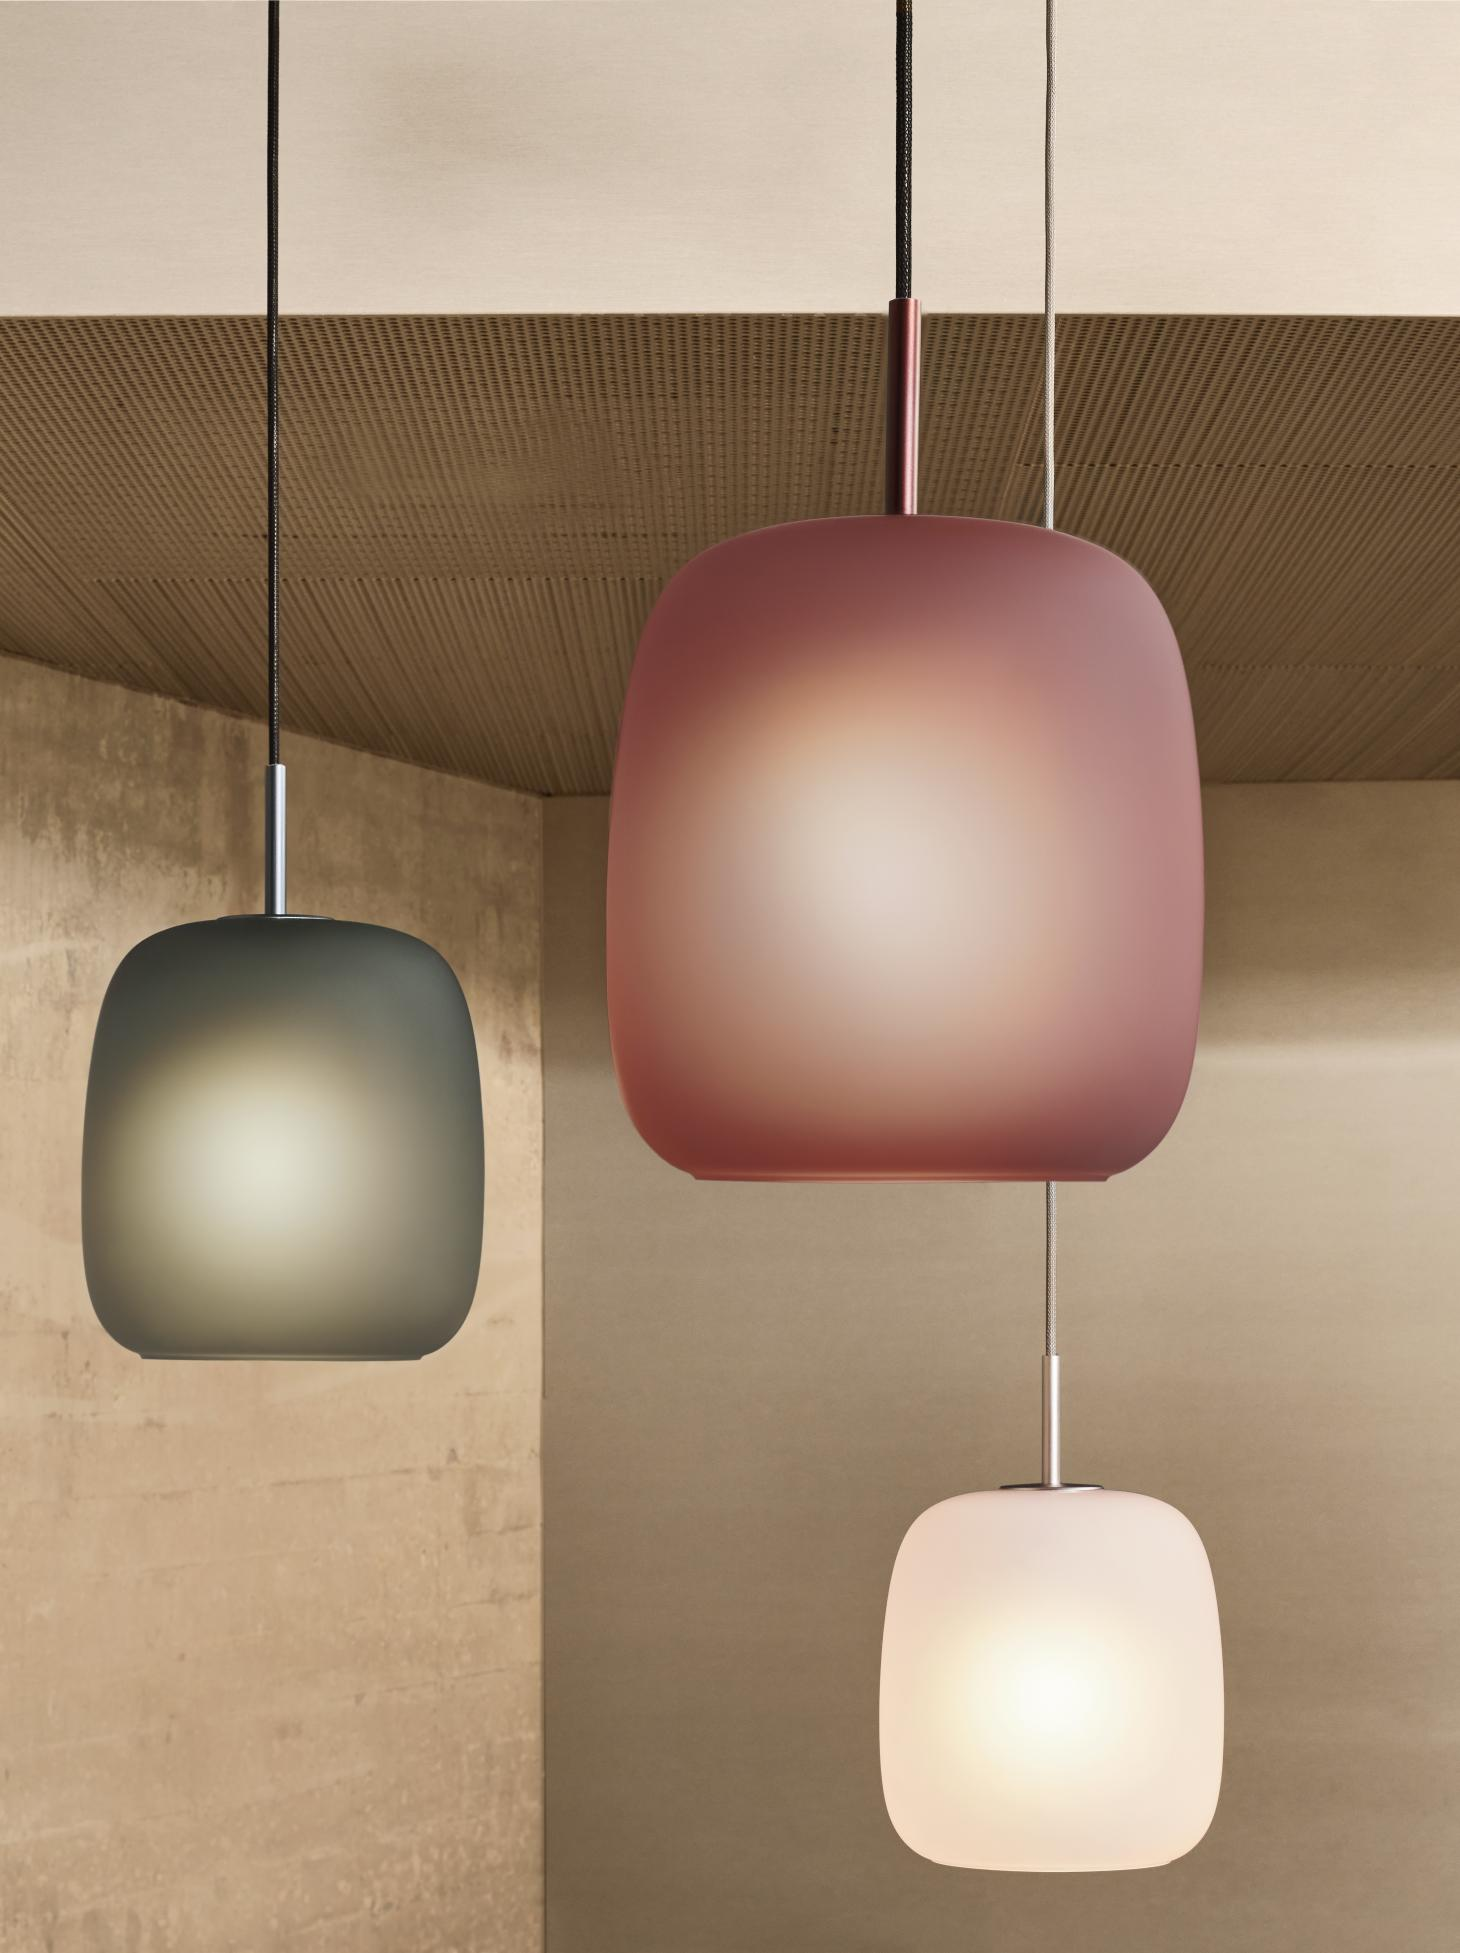 Three pendant lights with pink, green and white frosted glass shades